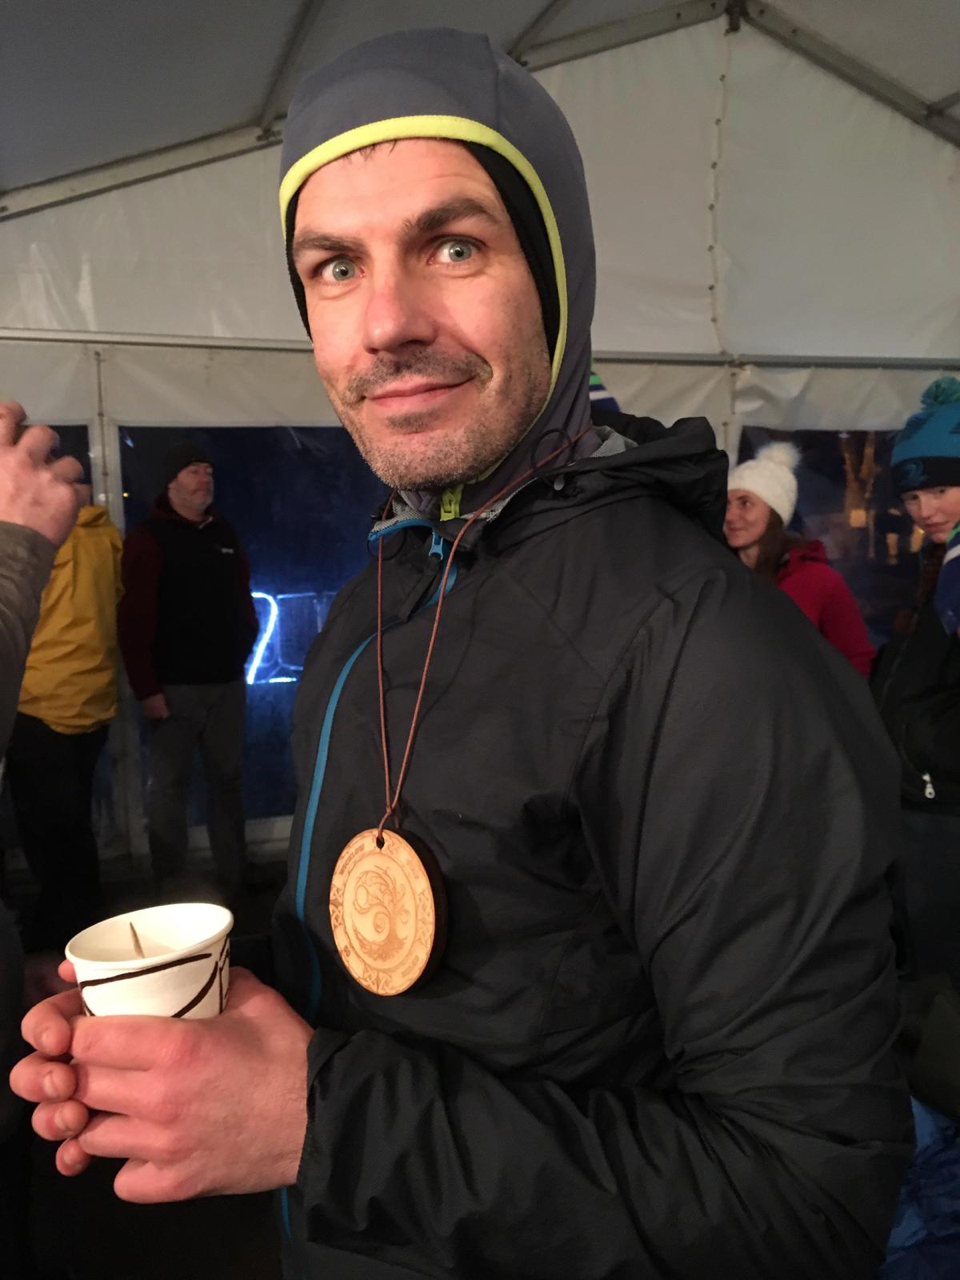 The finishing medal and a soup. Wearing every piece of clothing I have.